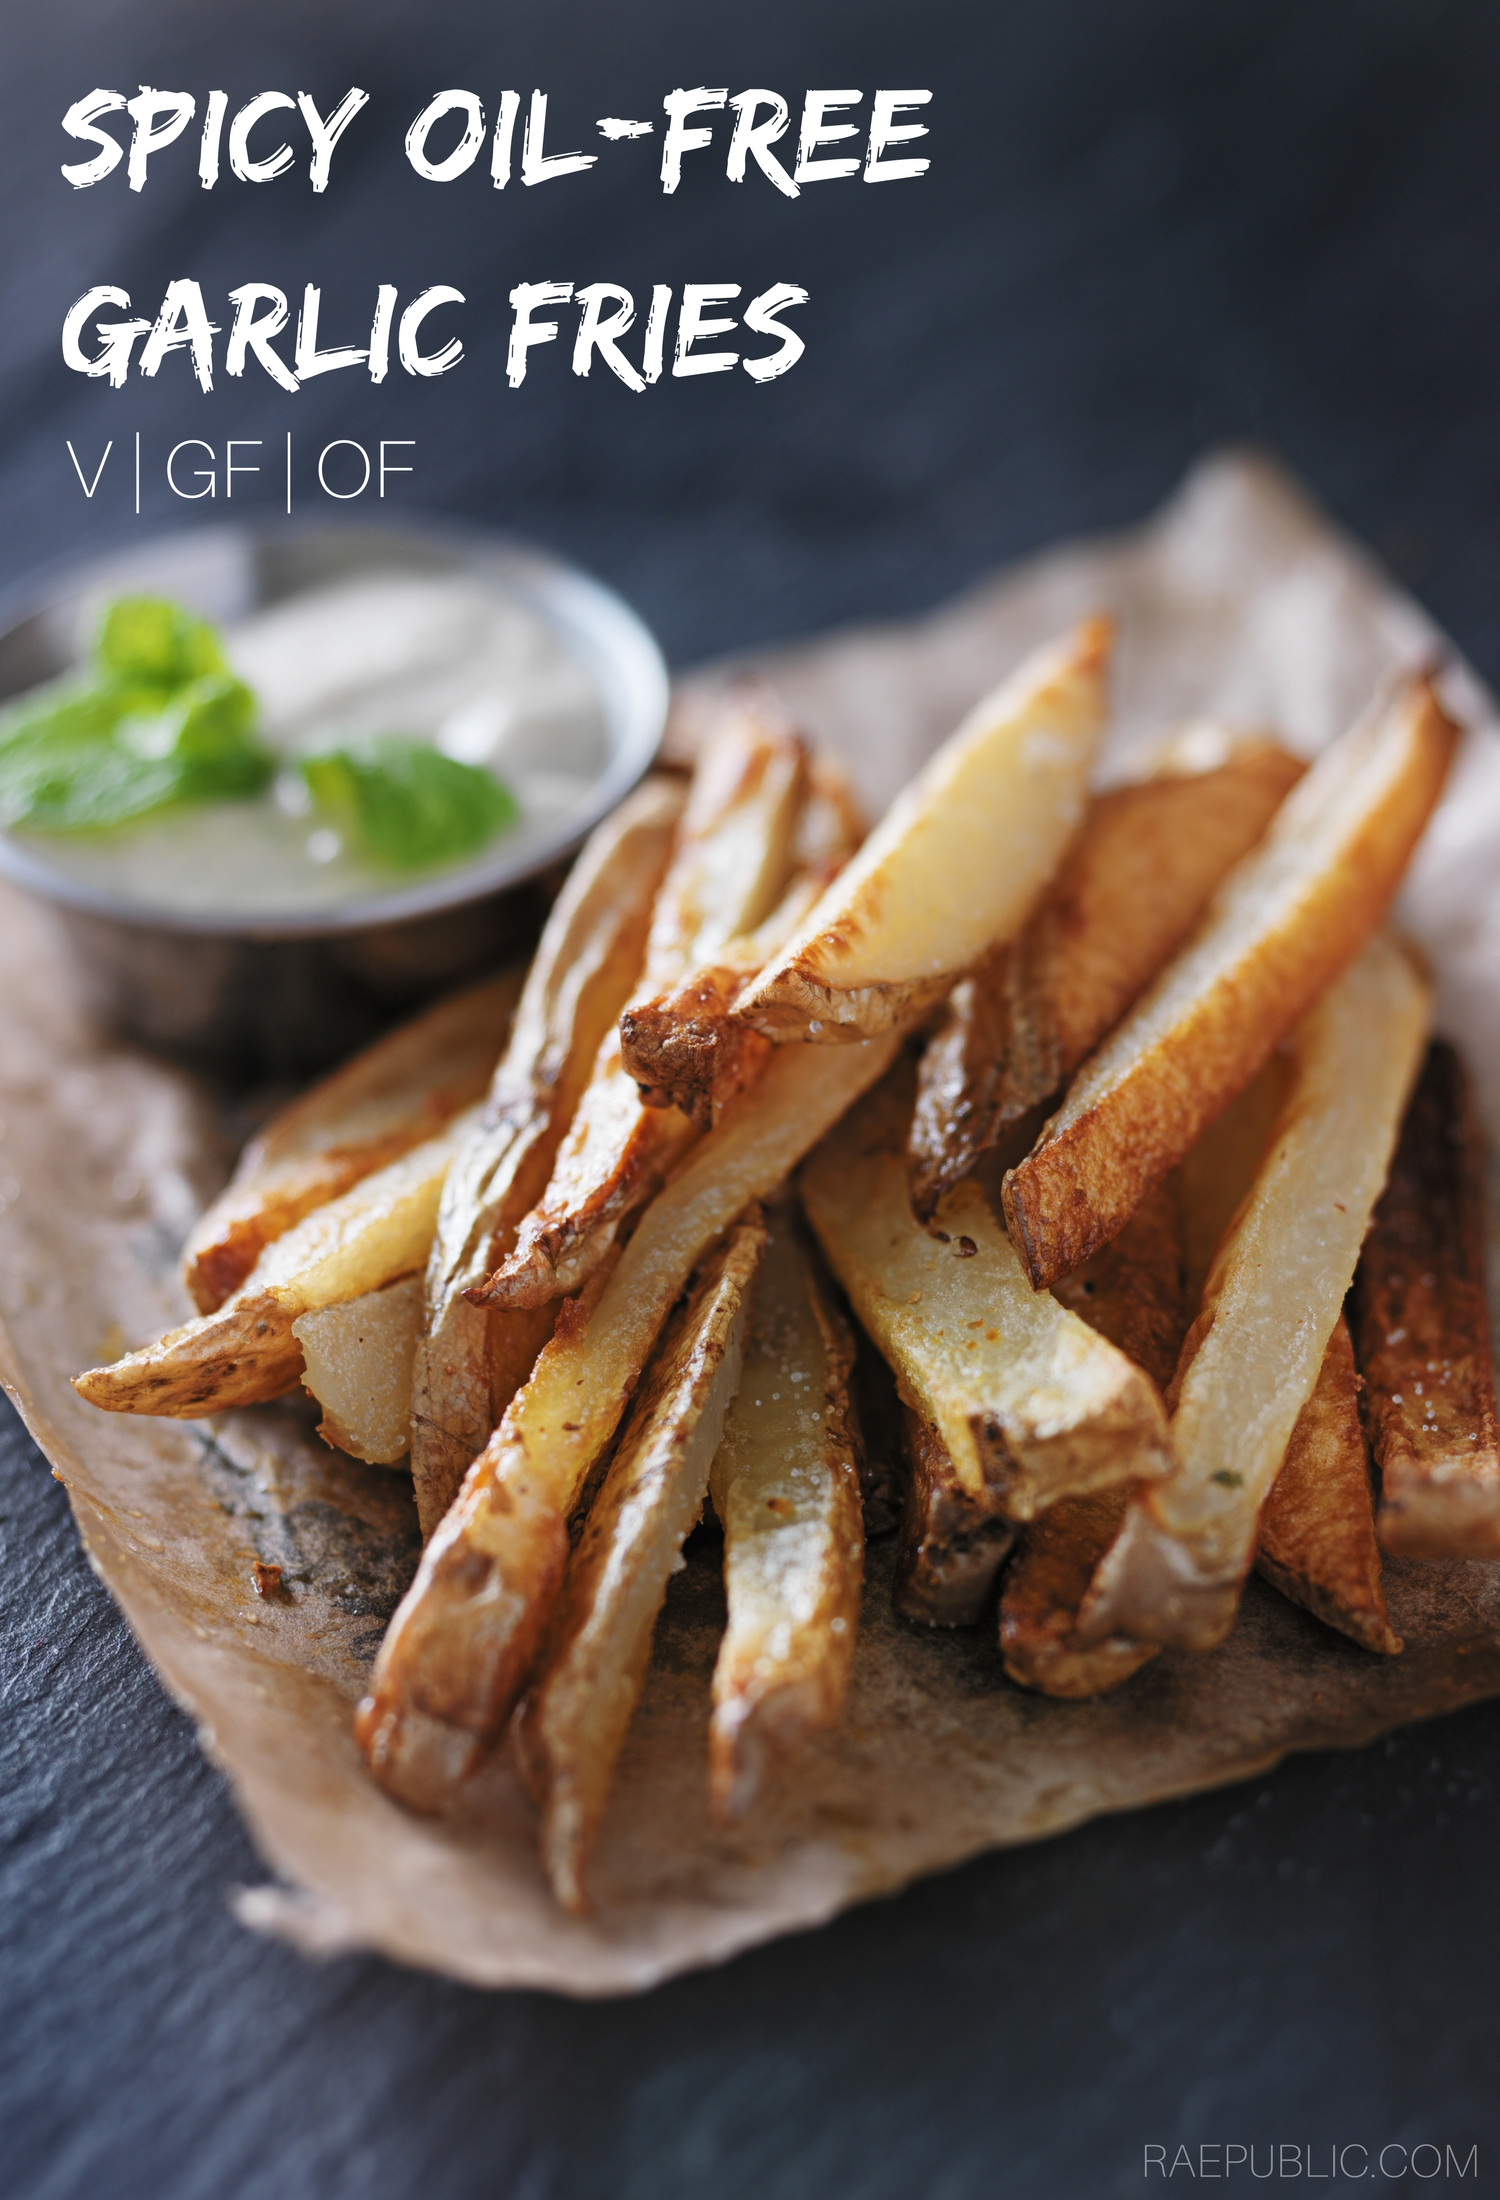 Spicy Garlic Fries that are oil free, vegan and gluten free so all can eat! They are so tasty with the right amount of crip you'll want to make them every day!